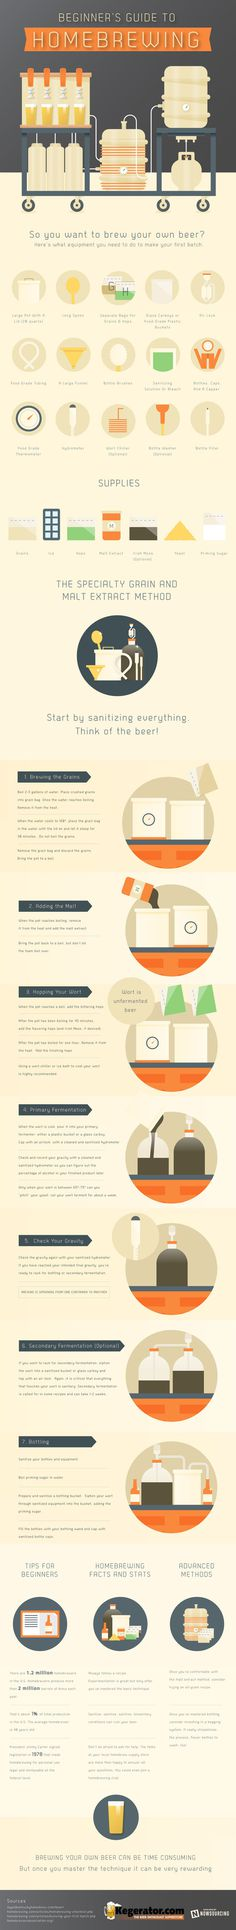 Homebrewing is a fun way to learn how craft beer really works. This infographic outlines the basic first steps to get started. #beer #brewing #homebrewing #home